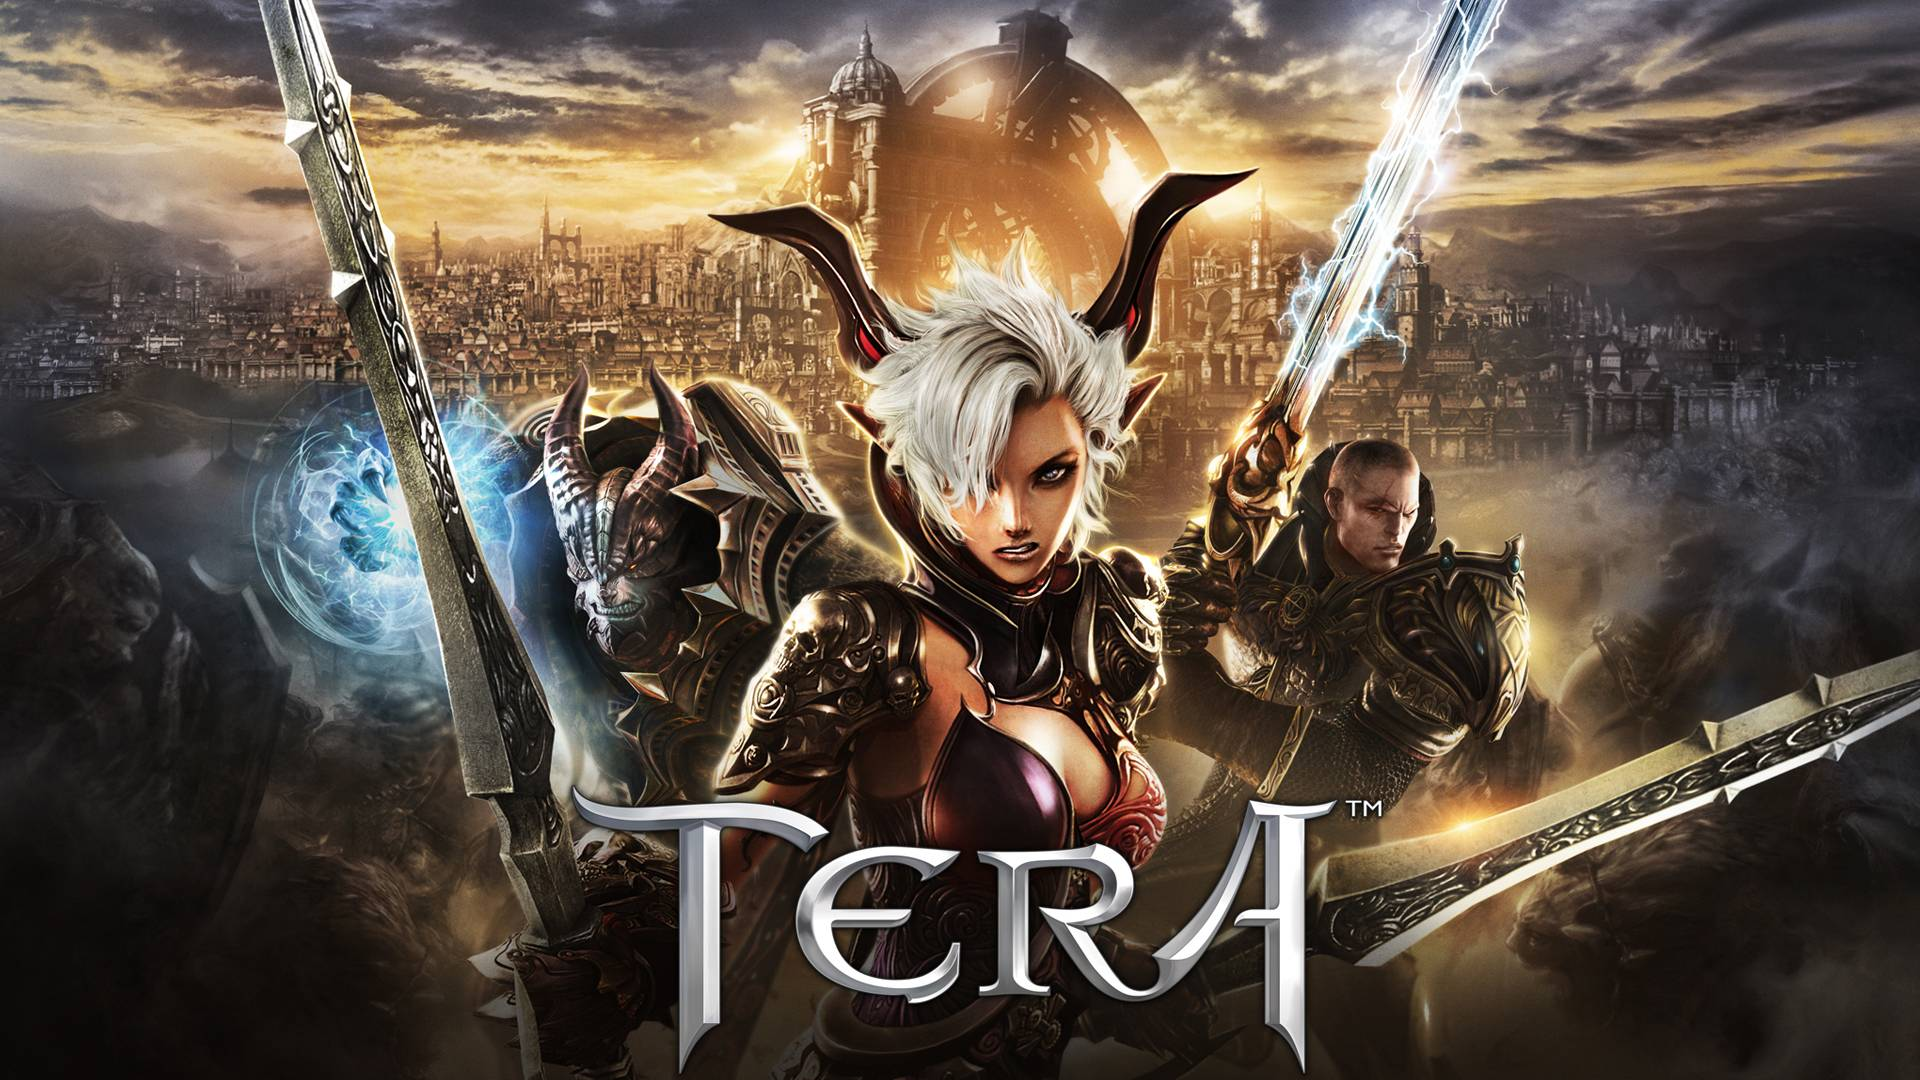 tera rising wallpaper - photo #10